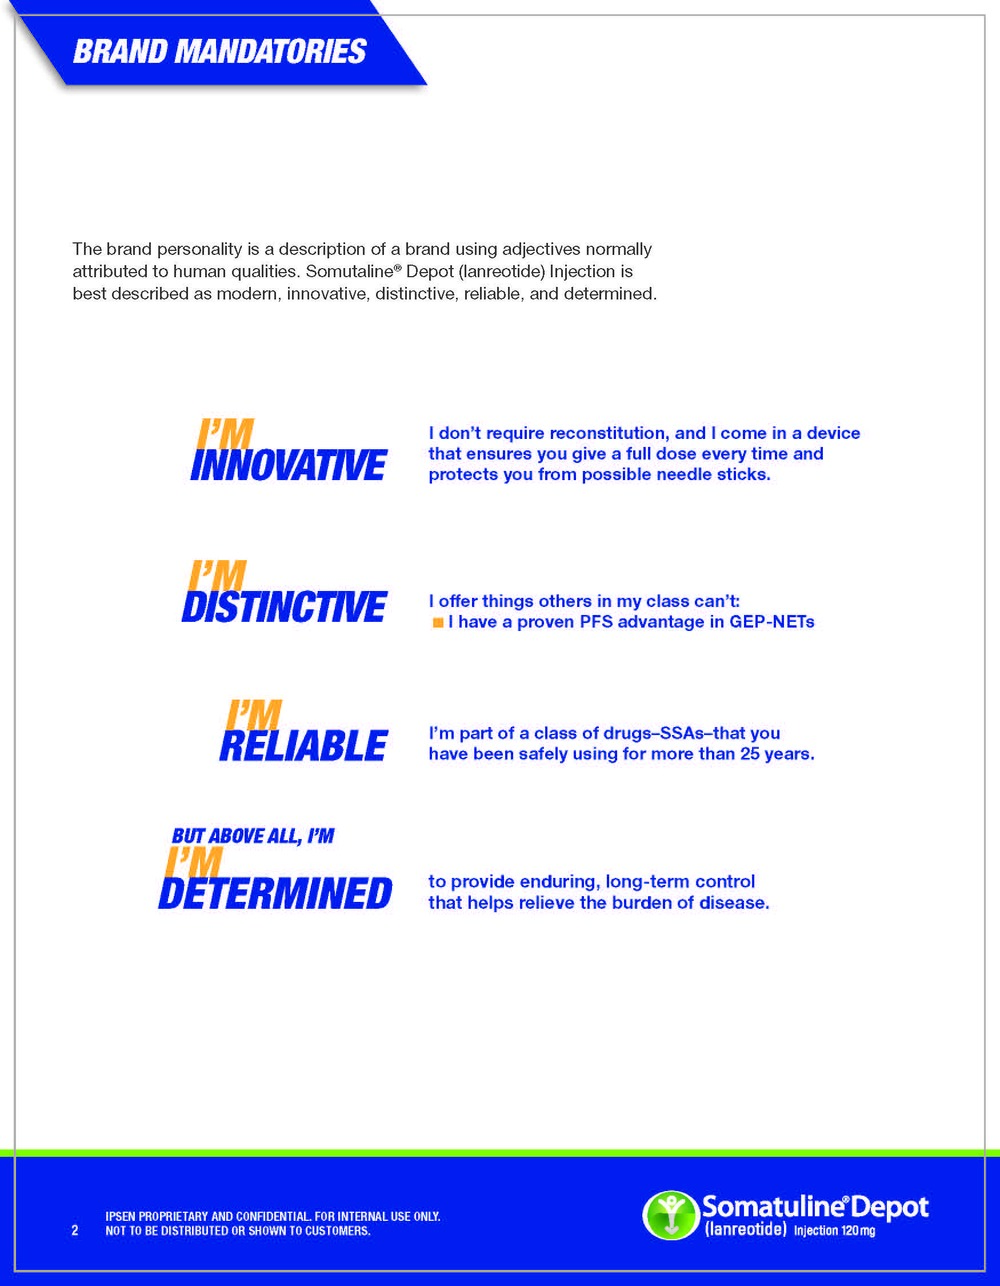 IPSO15133_Branding Guide_R41_Page_02.jpg